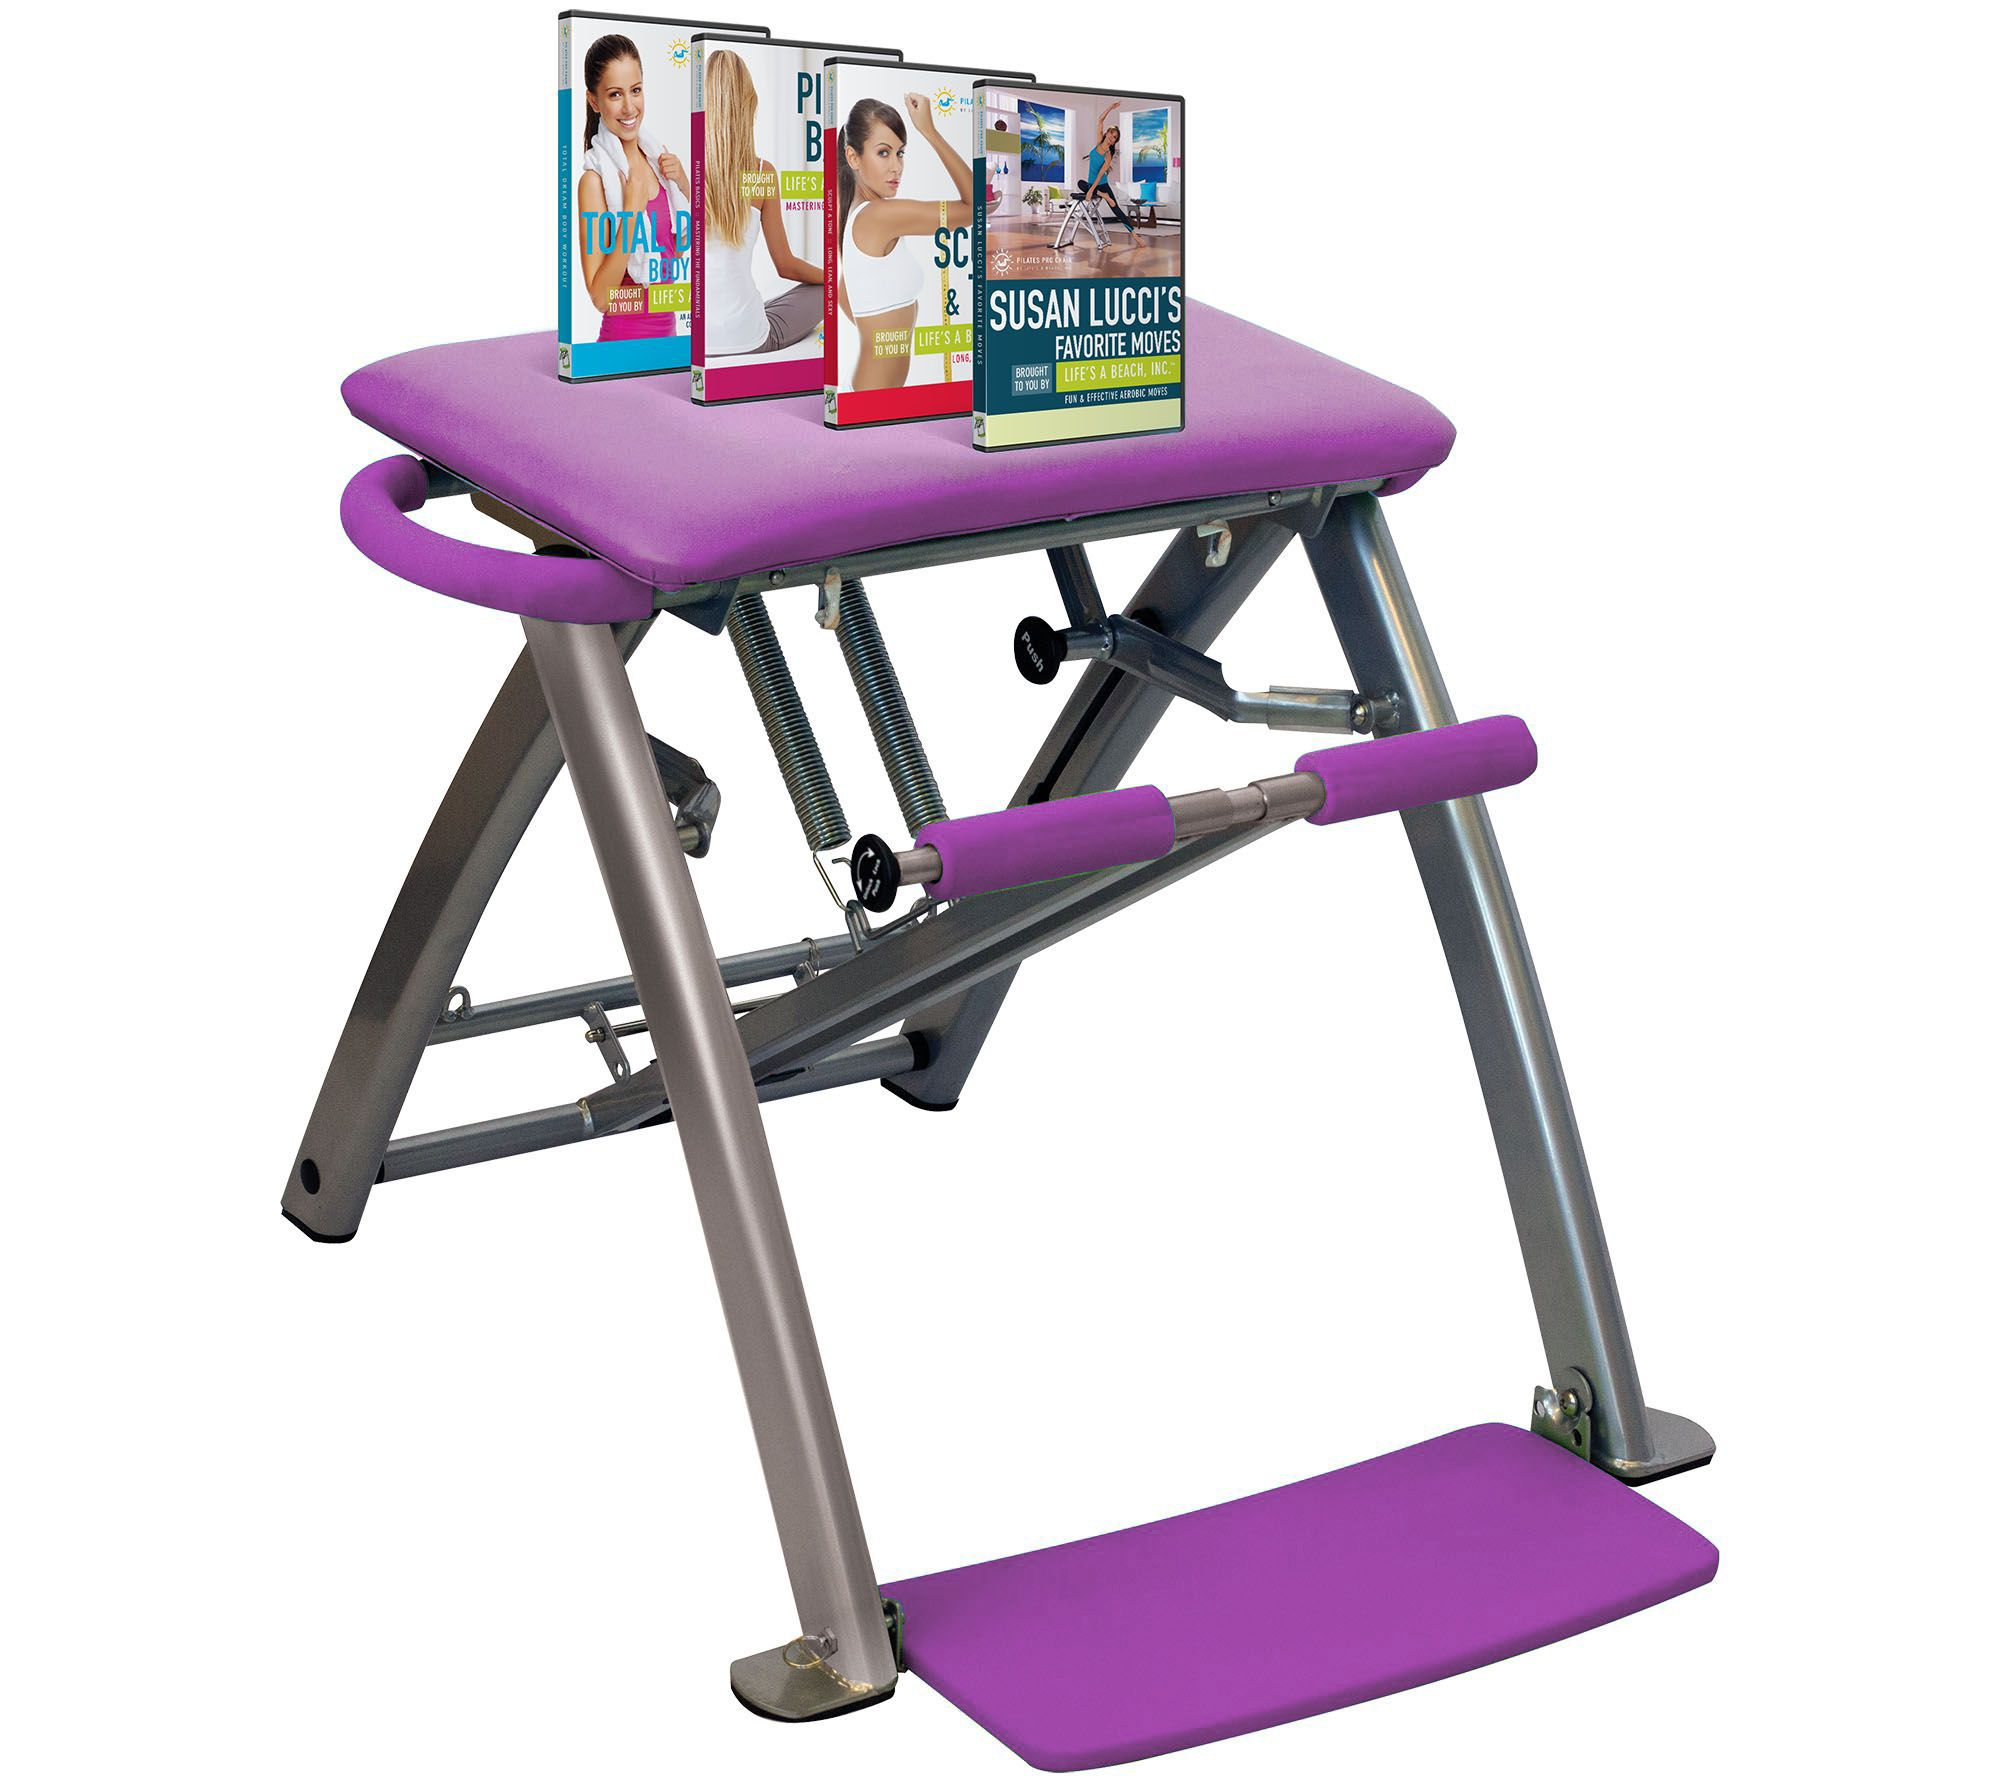 pilates chair for sale hon office guest chairs pro with 4 dvds by life s a beach page 1 qvc com